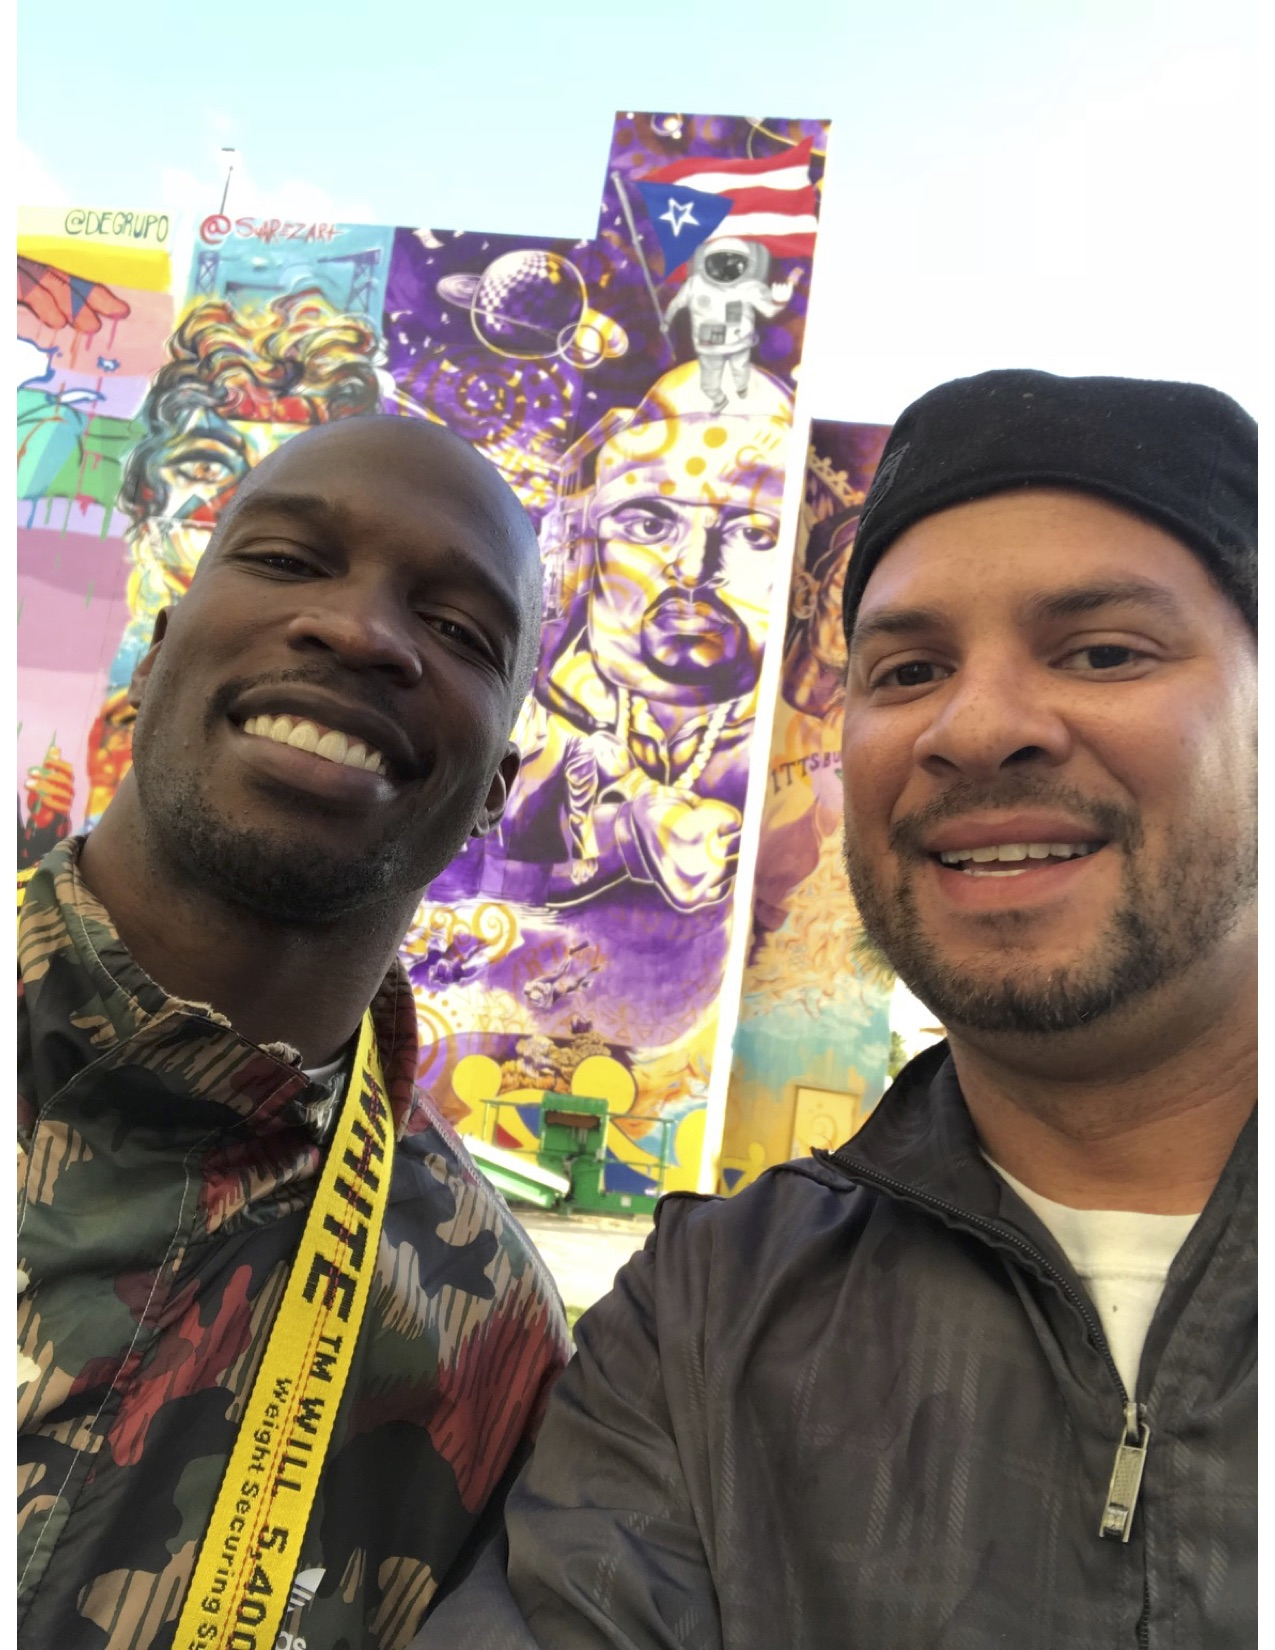 """Chad """"Ochocinco"""" Johnson and Kyle Holbrook at the Puerto Rico Hope mural, Ochocinco was artistically shooting photography of the mural when KYLE SAW HIM, THATS WHAT """"ARTWORLD"""" IS ALL ABOUT!!!"""